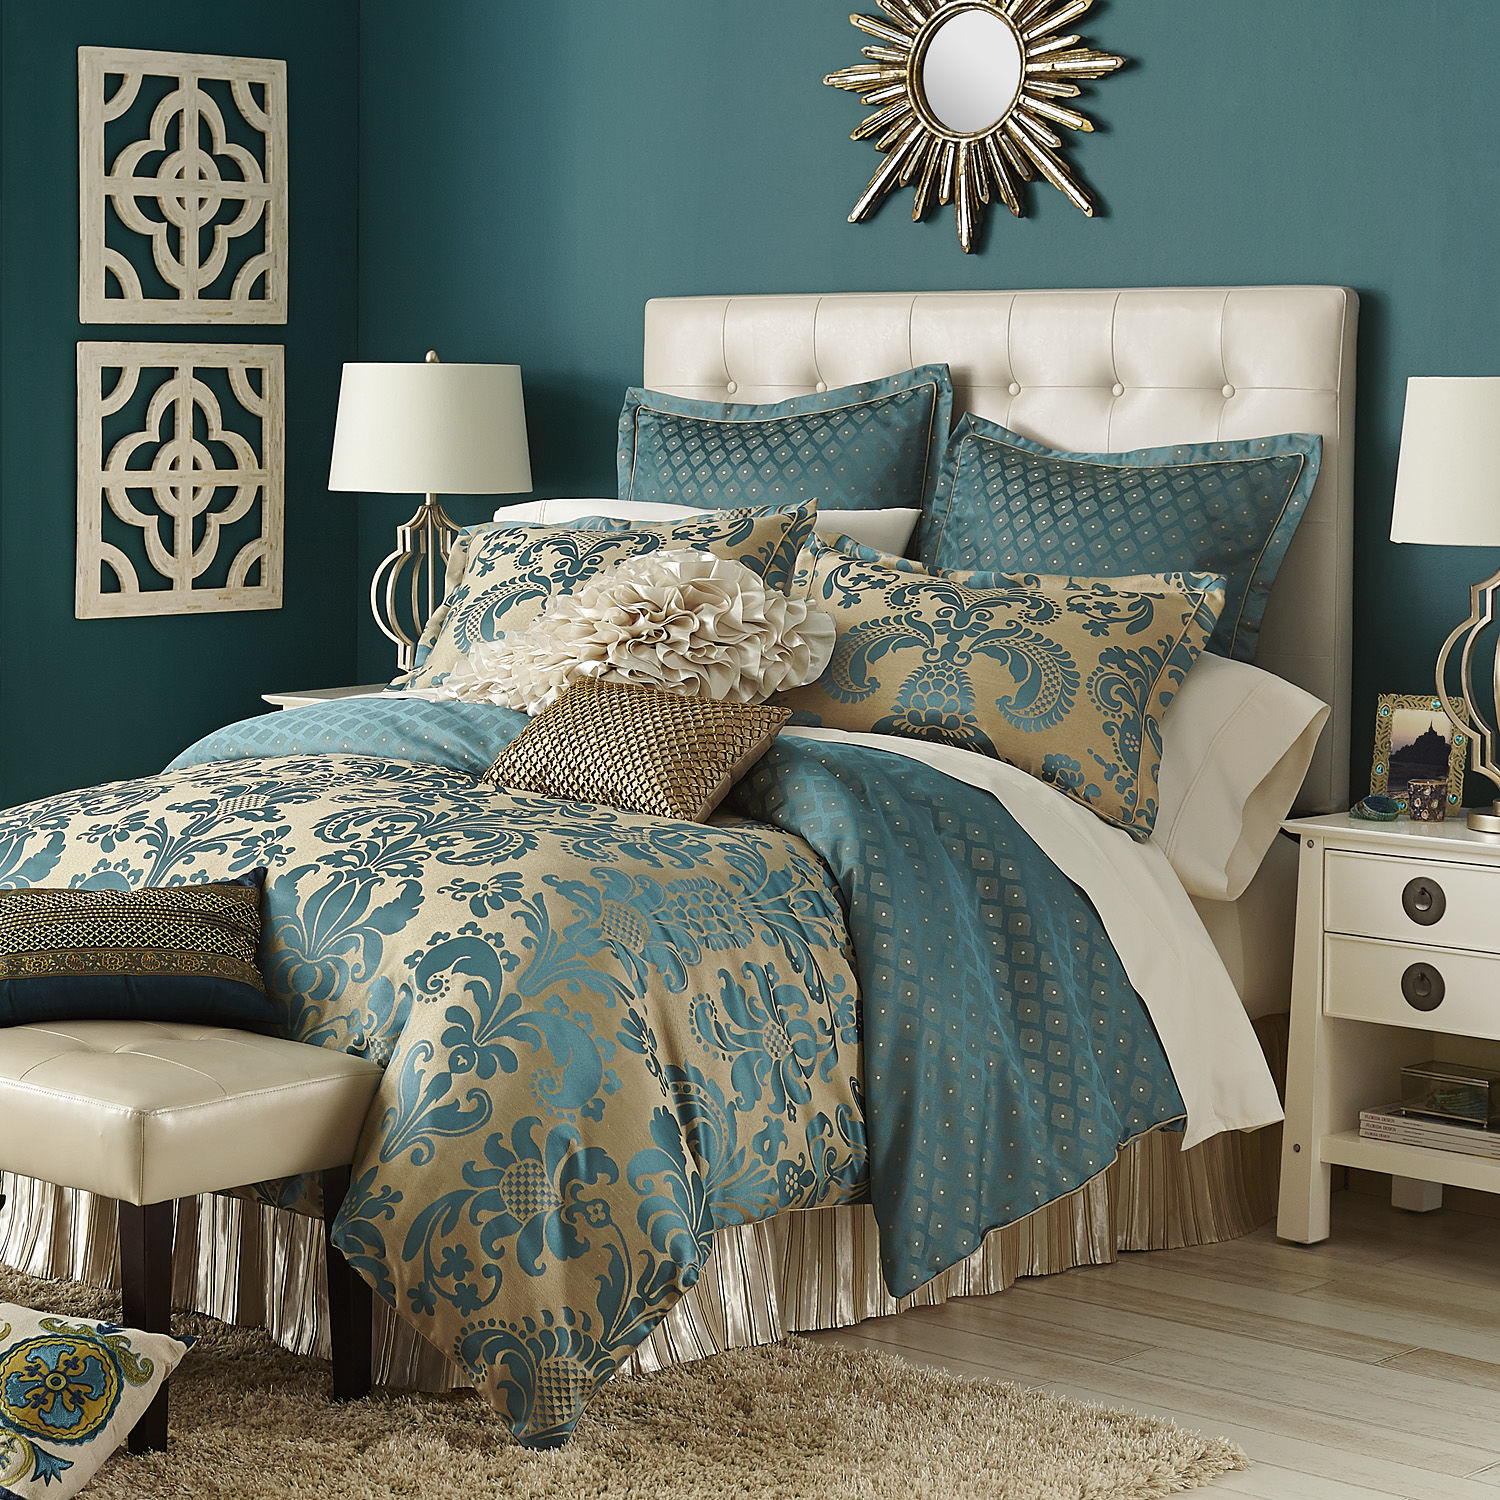 Calibri Jacquard Bedding Amp Duvet Teal From Pier 1 Imports